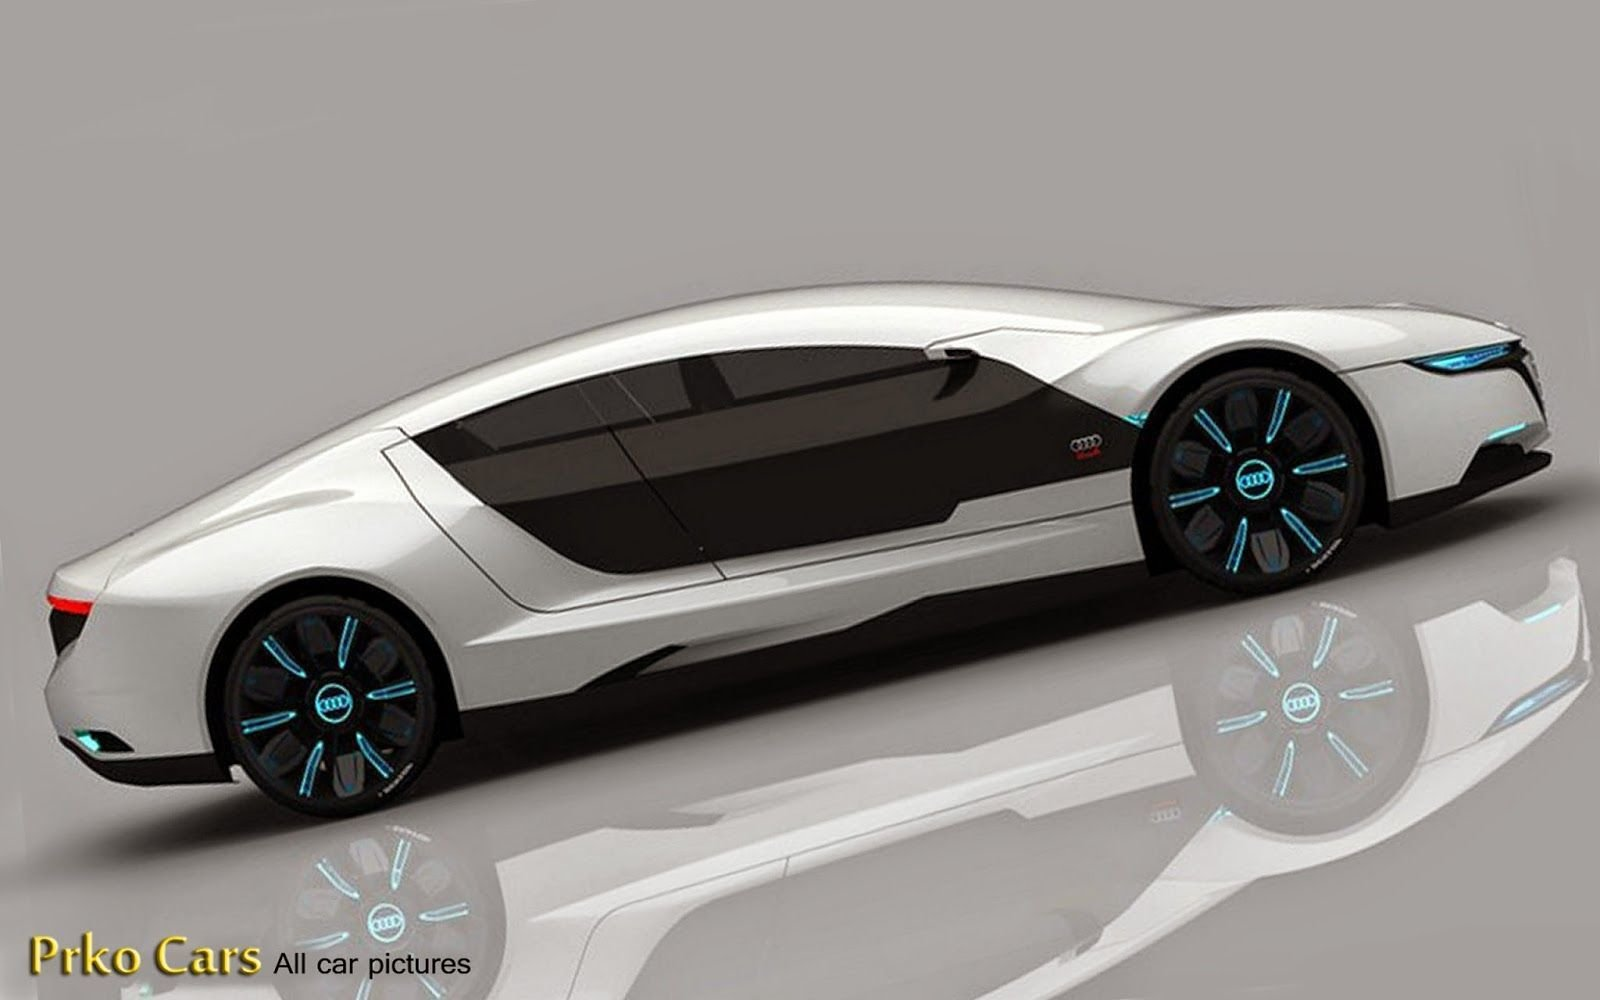 Latest Car Pictures Audi A9 Concept Prko Cars All Price Free Download